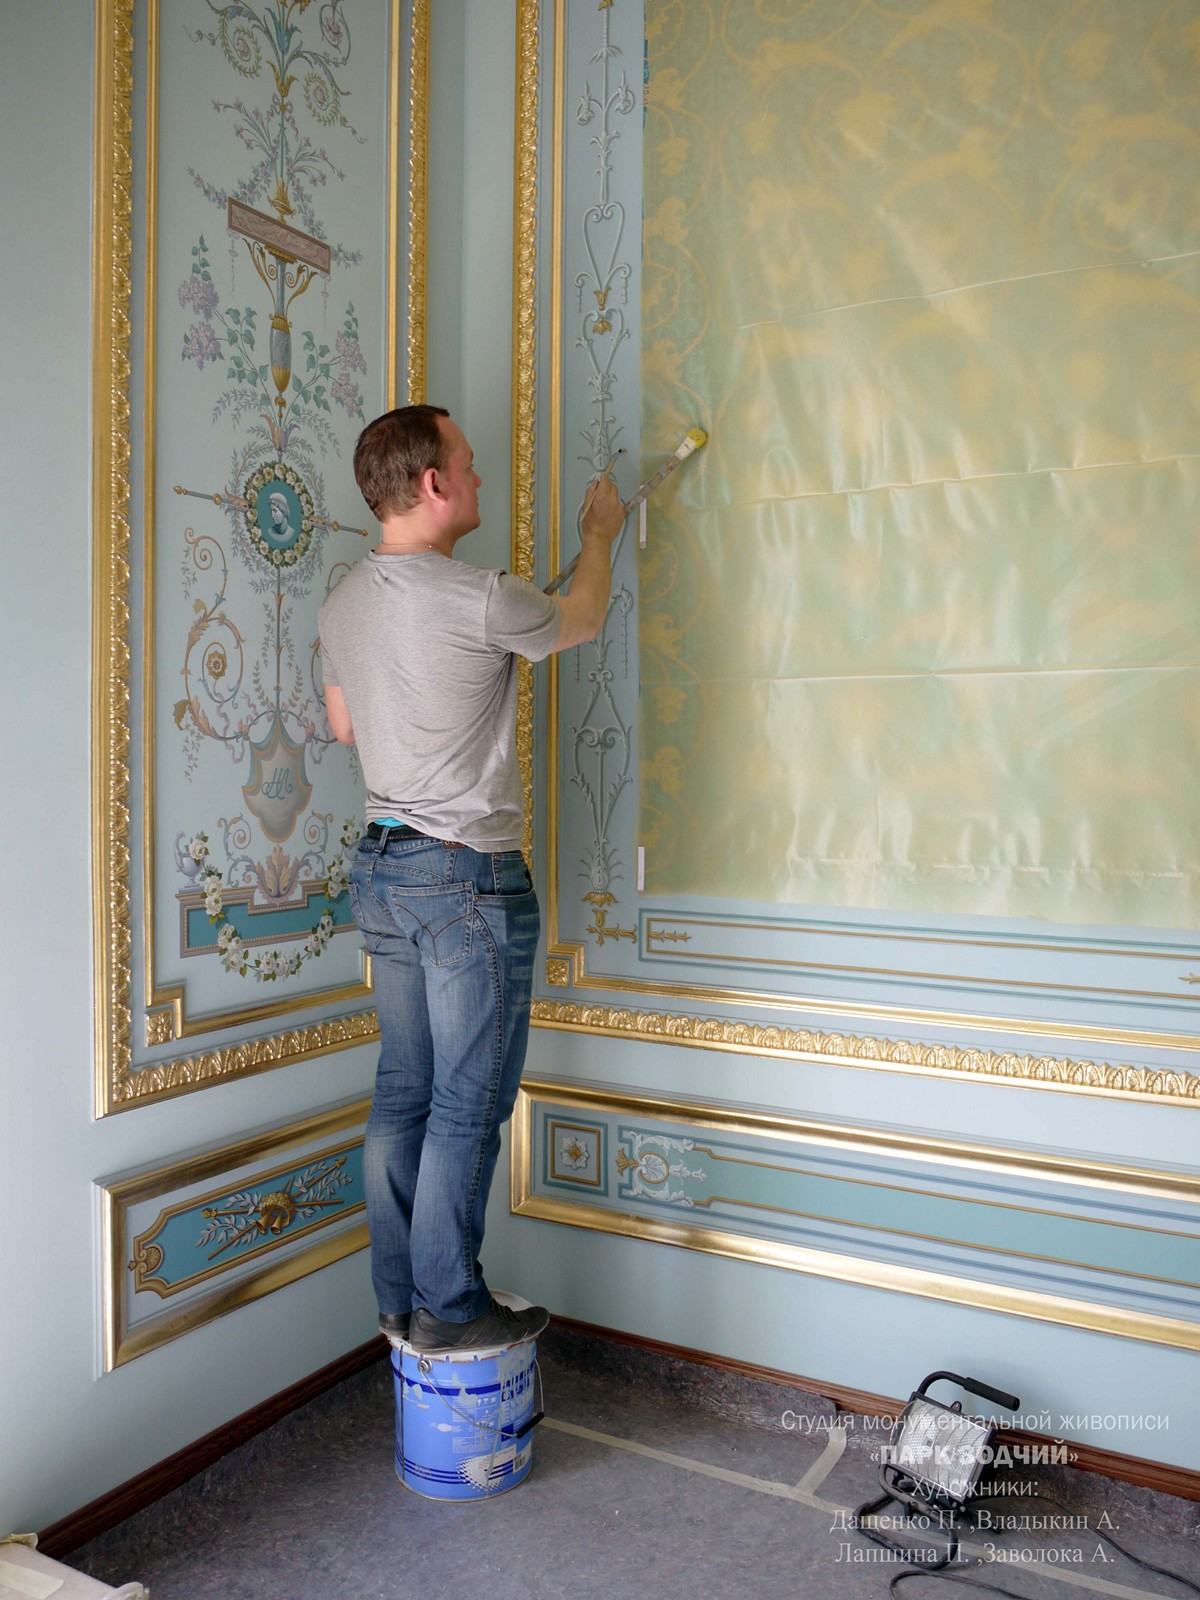 The execution of murals in classic bedroom